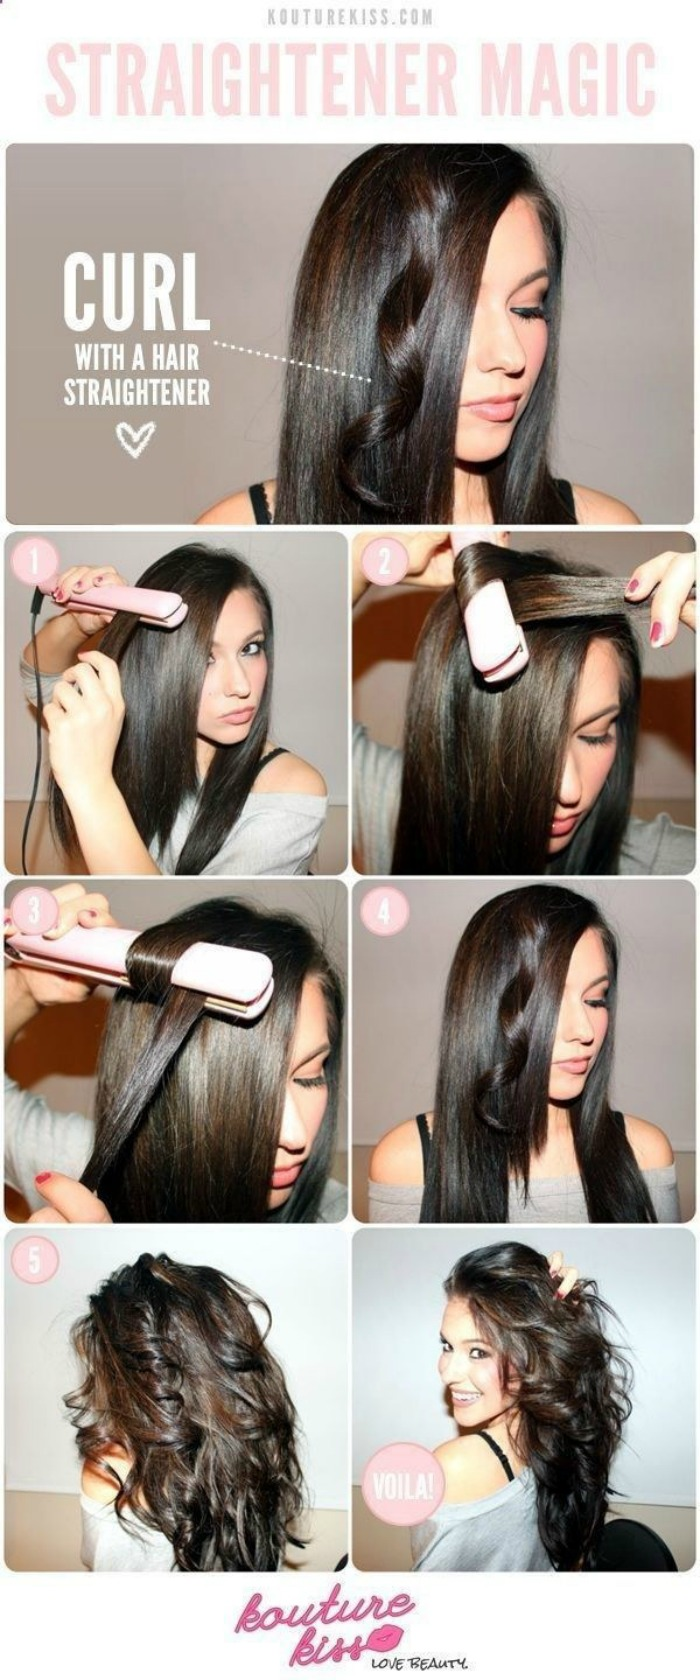 Curling with a Straightener